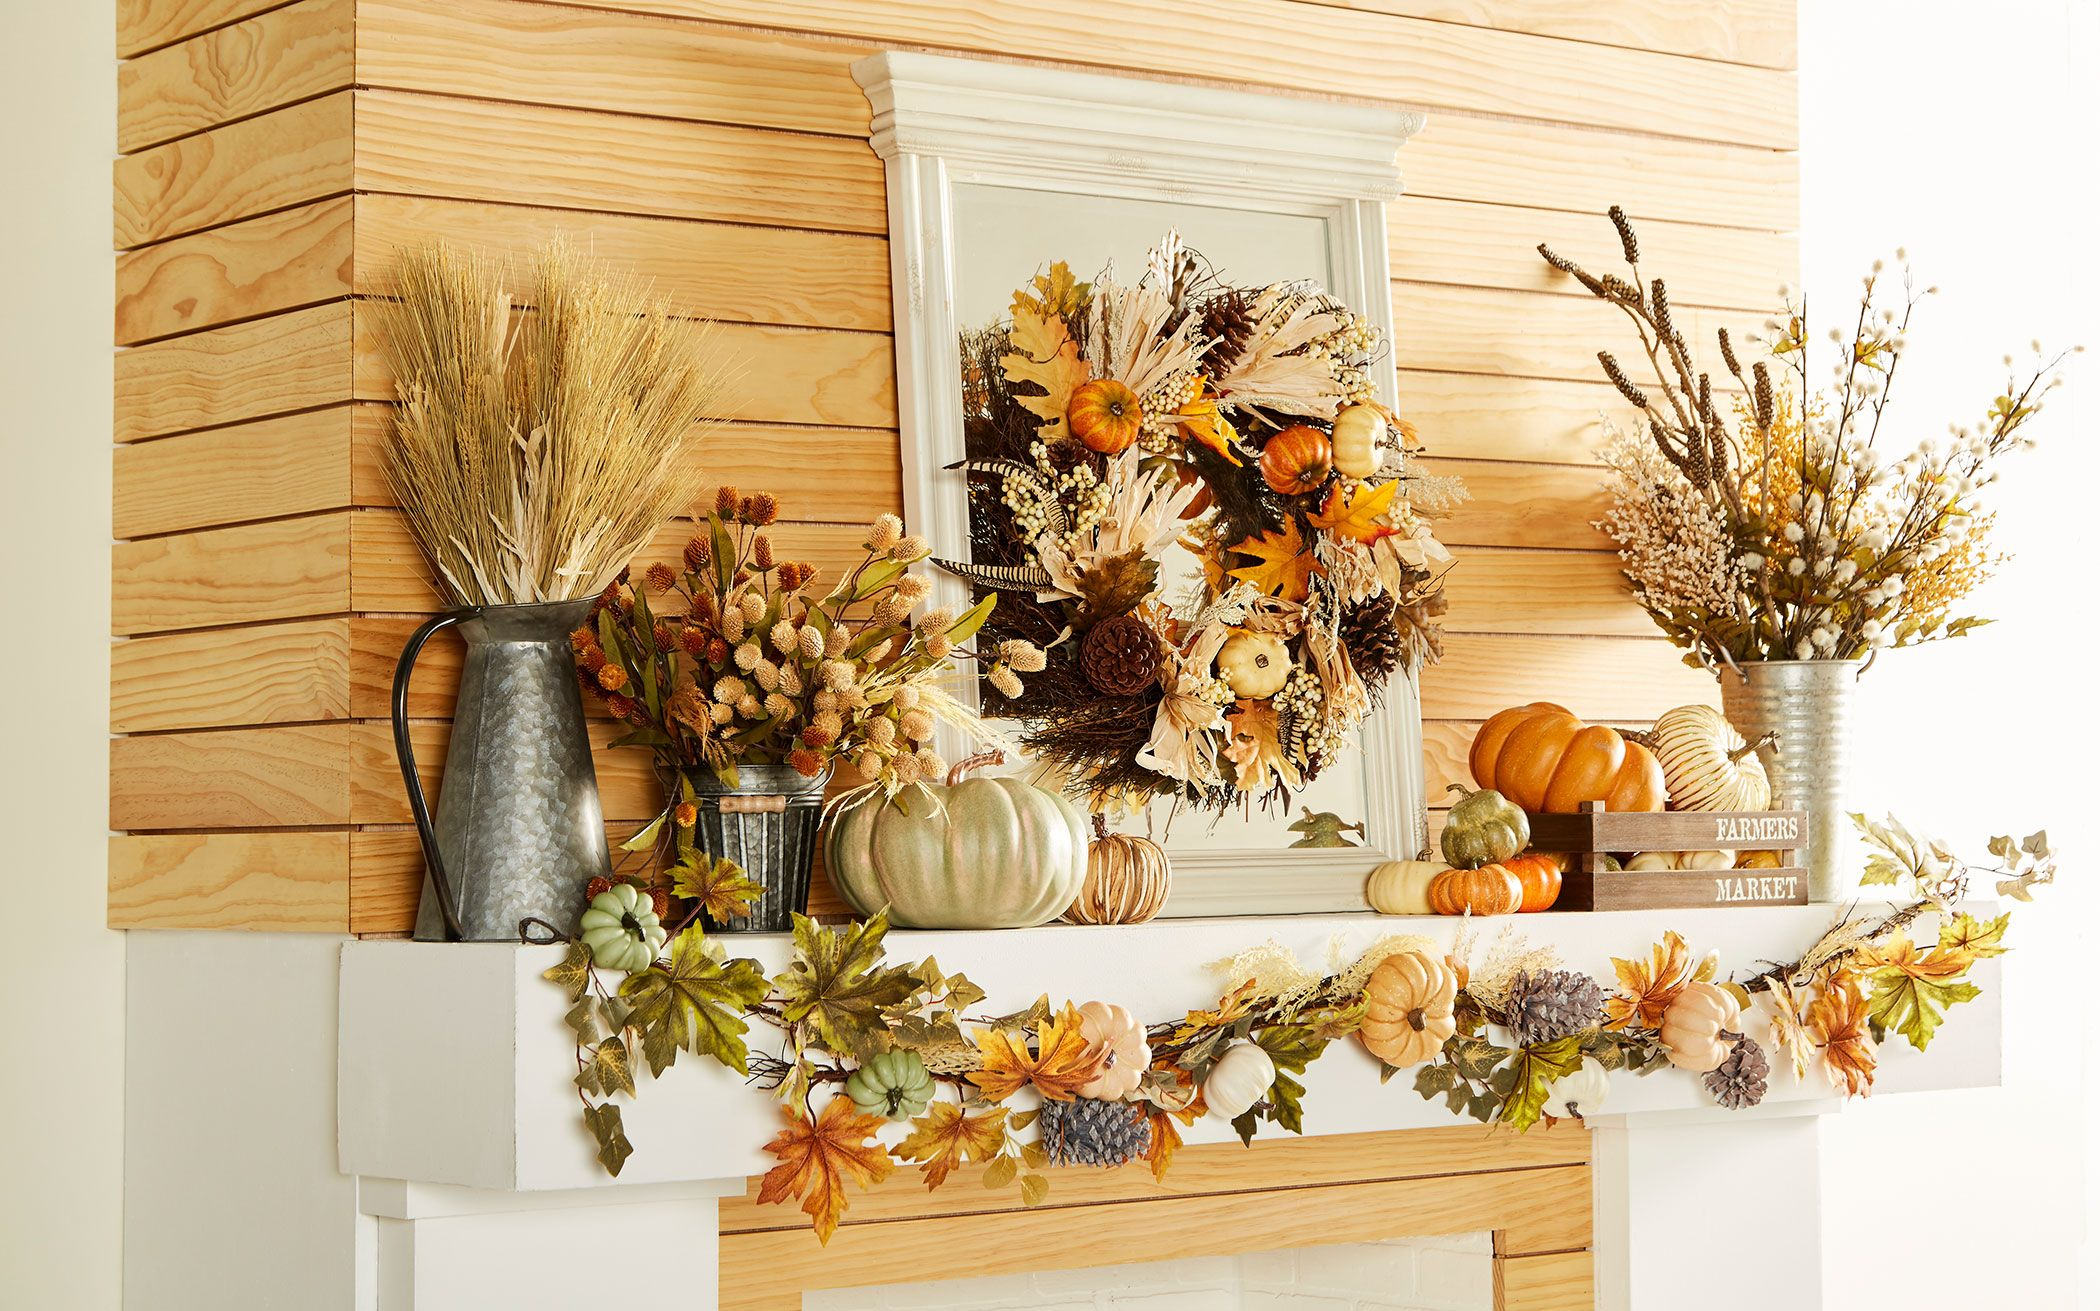 Michaels Fall Decor   Cheap Fall Decorating Ideas For The Mantel, Table,  And Outside